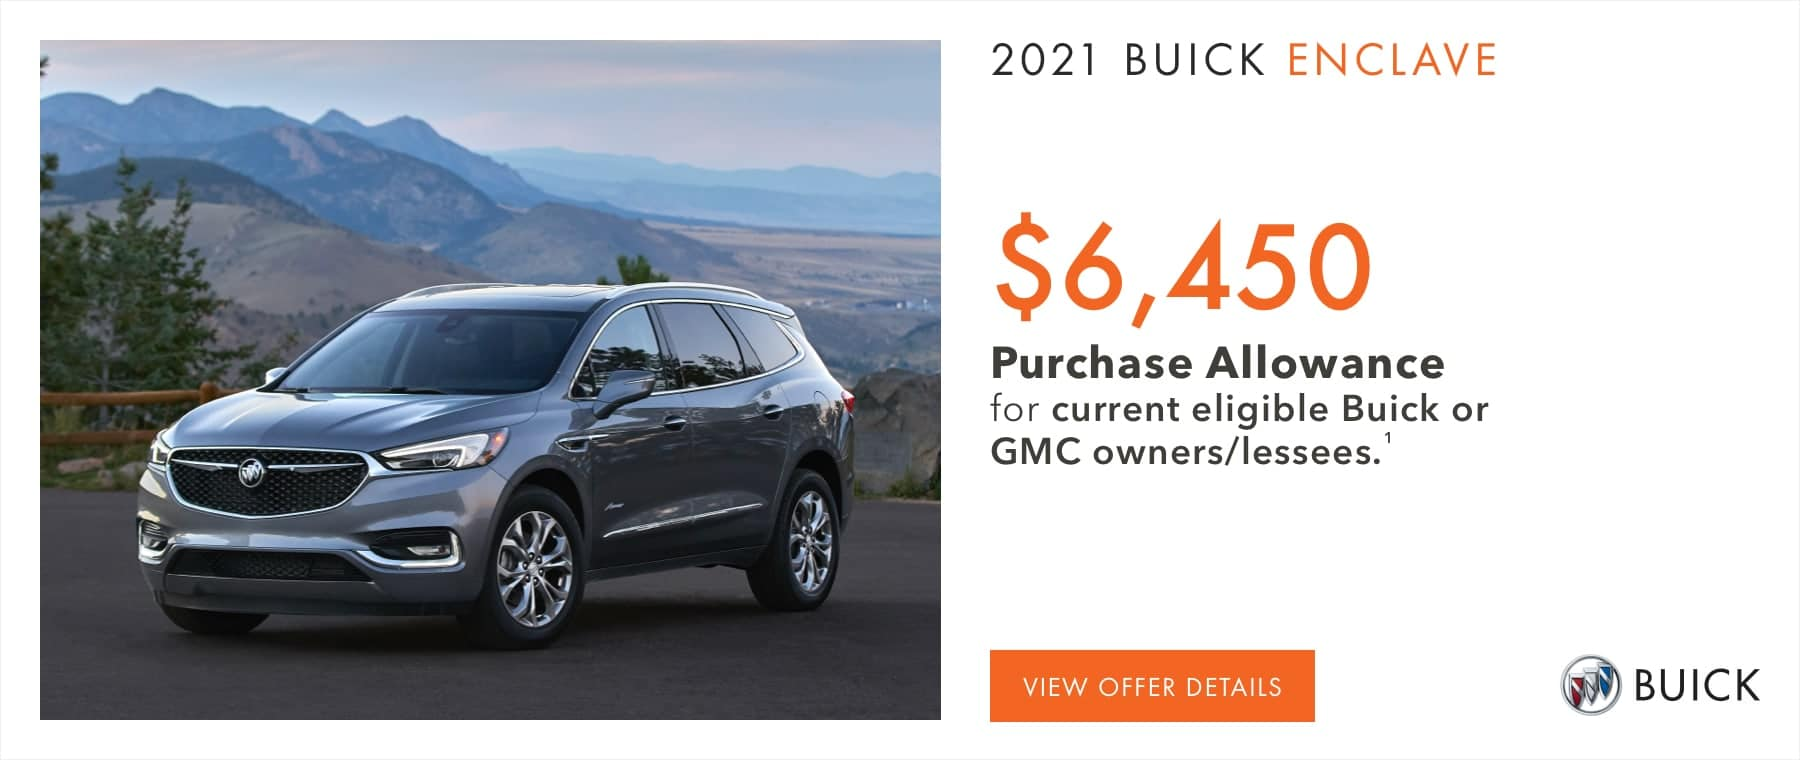 $6,450 Purchase Allowance for current eligible Buick or GMC owners/lessees.1